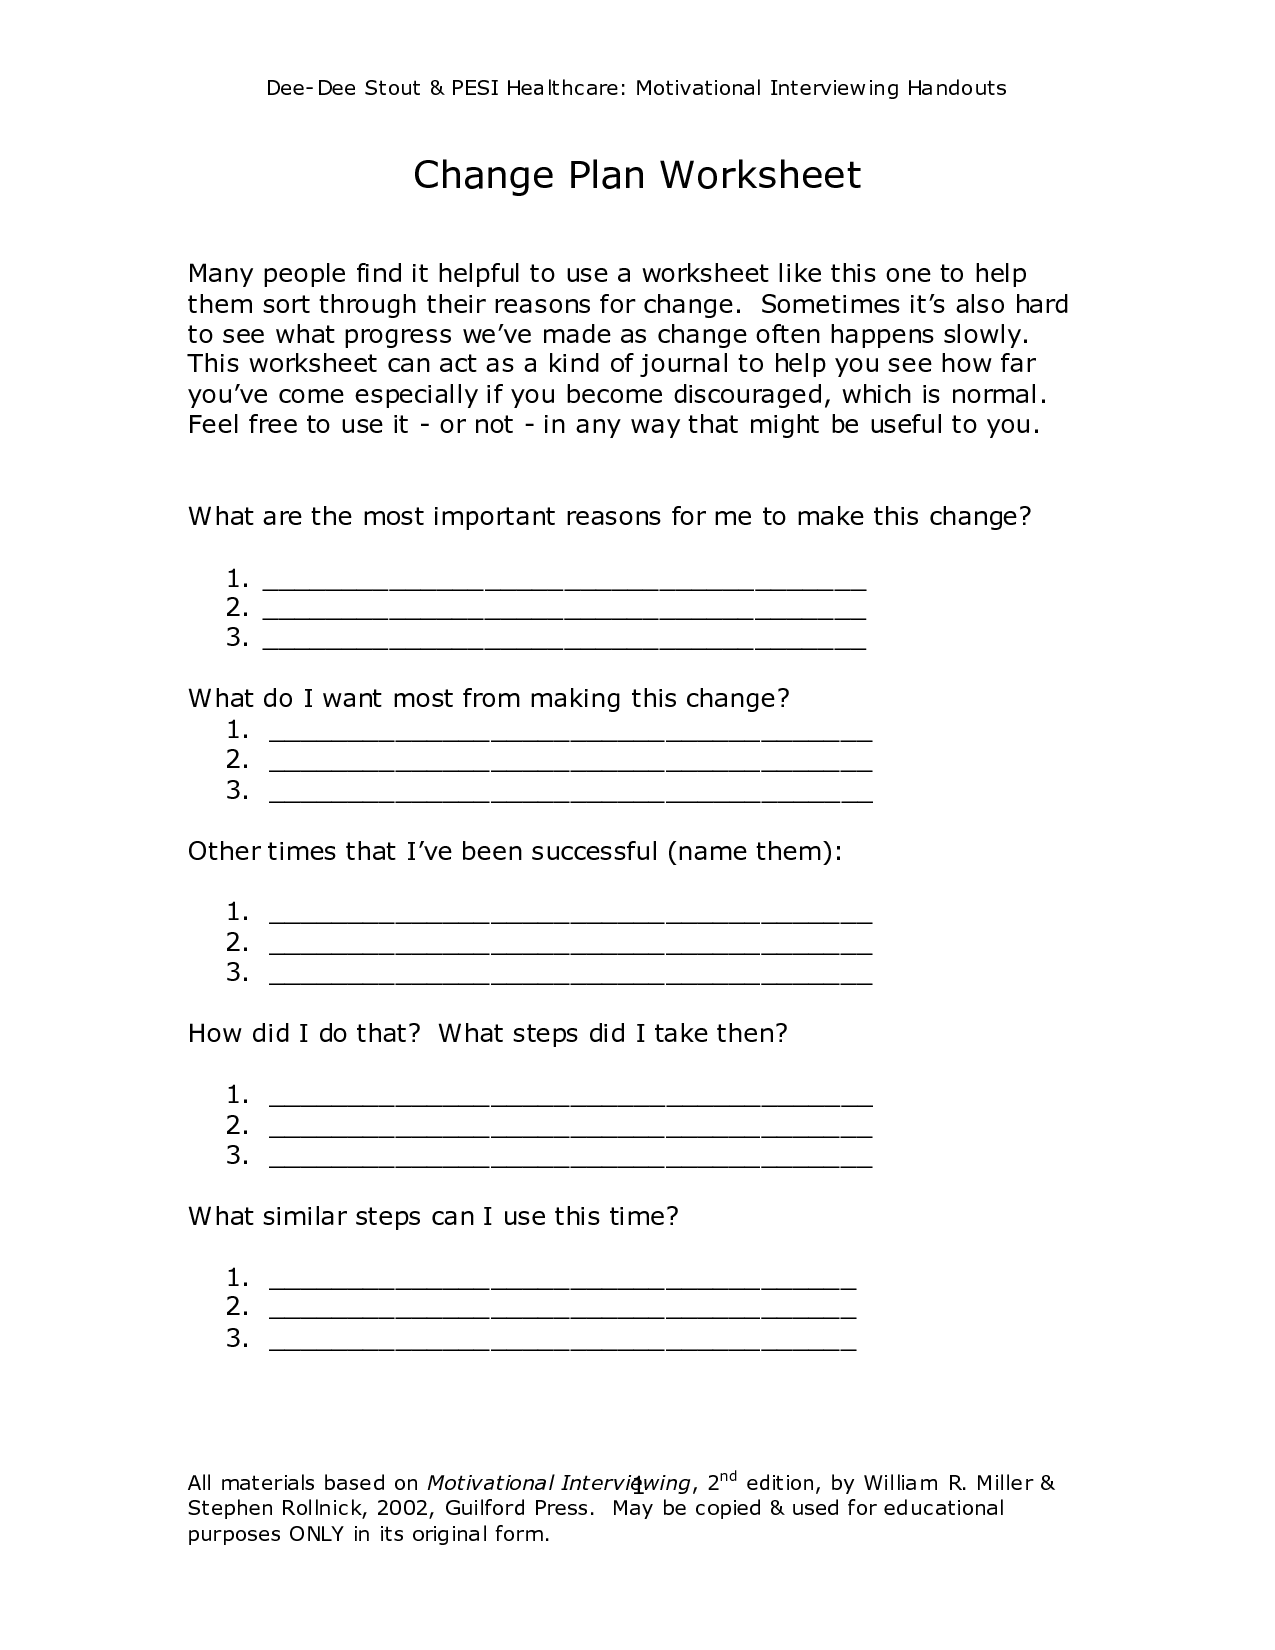 worksheet Drug Addiction Worksheets pin by o a andrews on counseling pinterest counselling addiction is usually associated with drugs or alcohol but many people struggle with